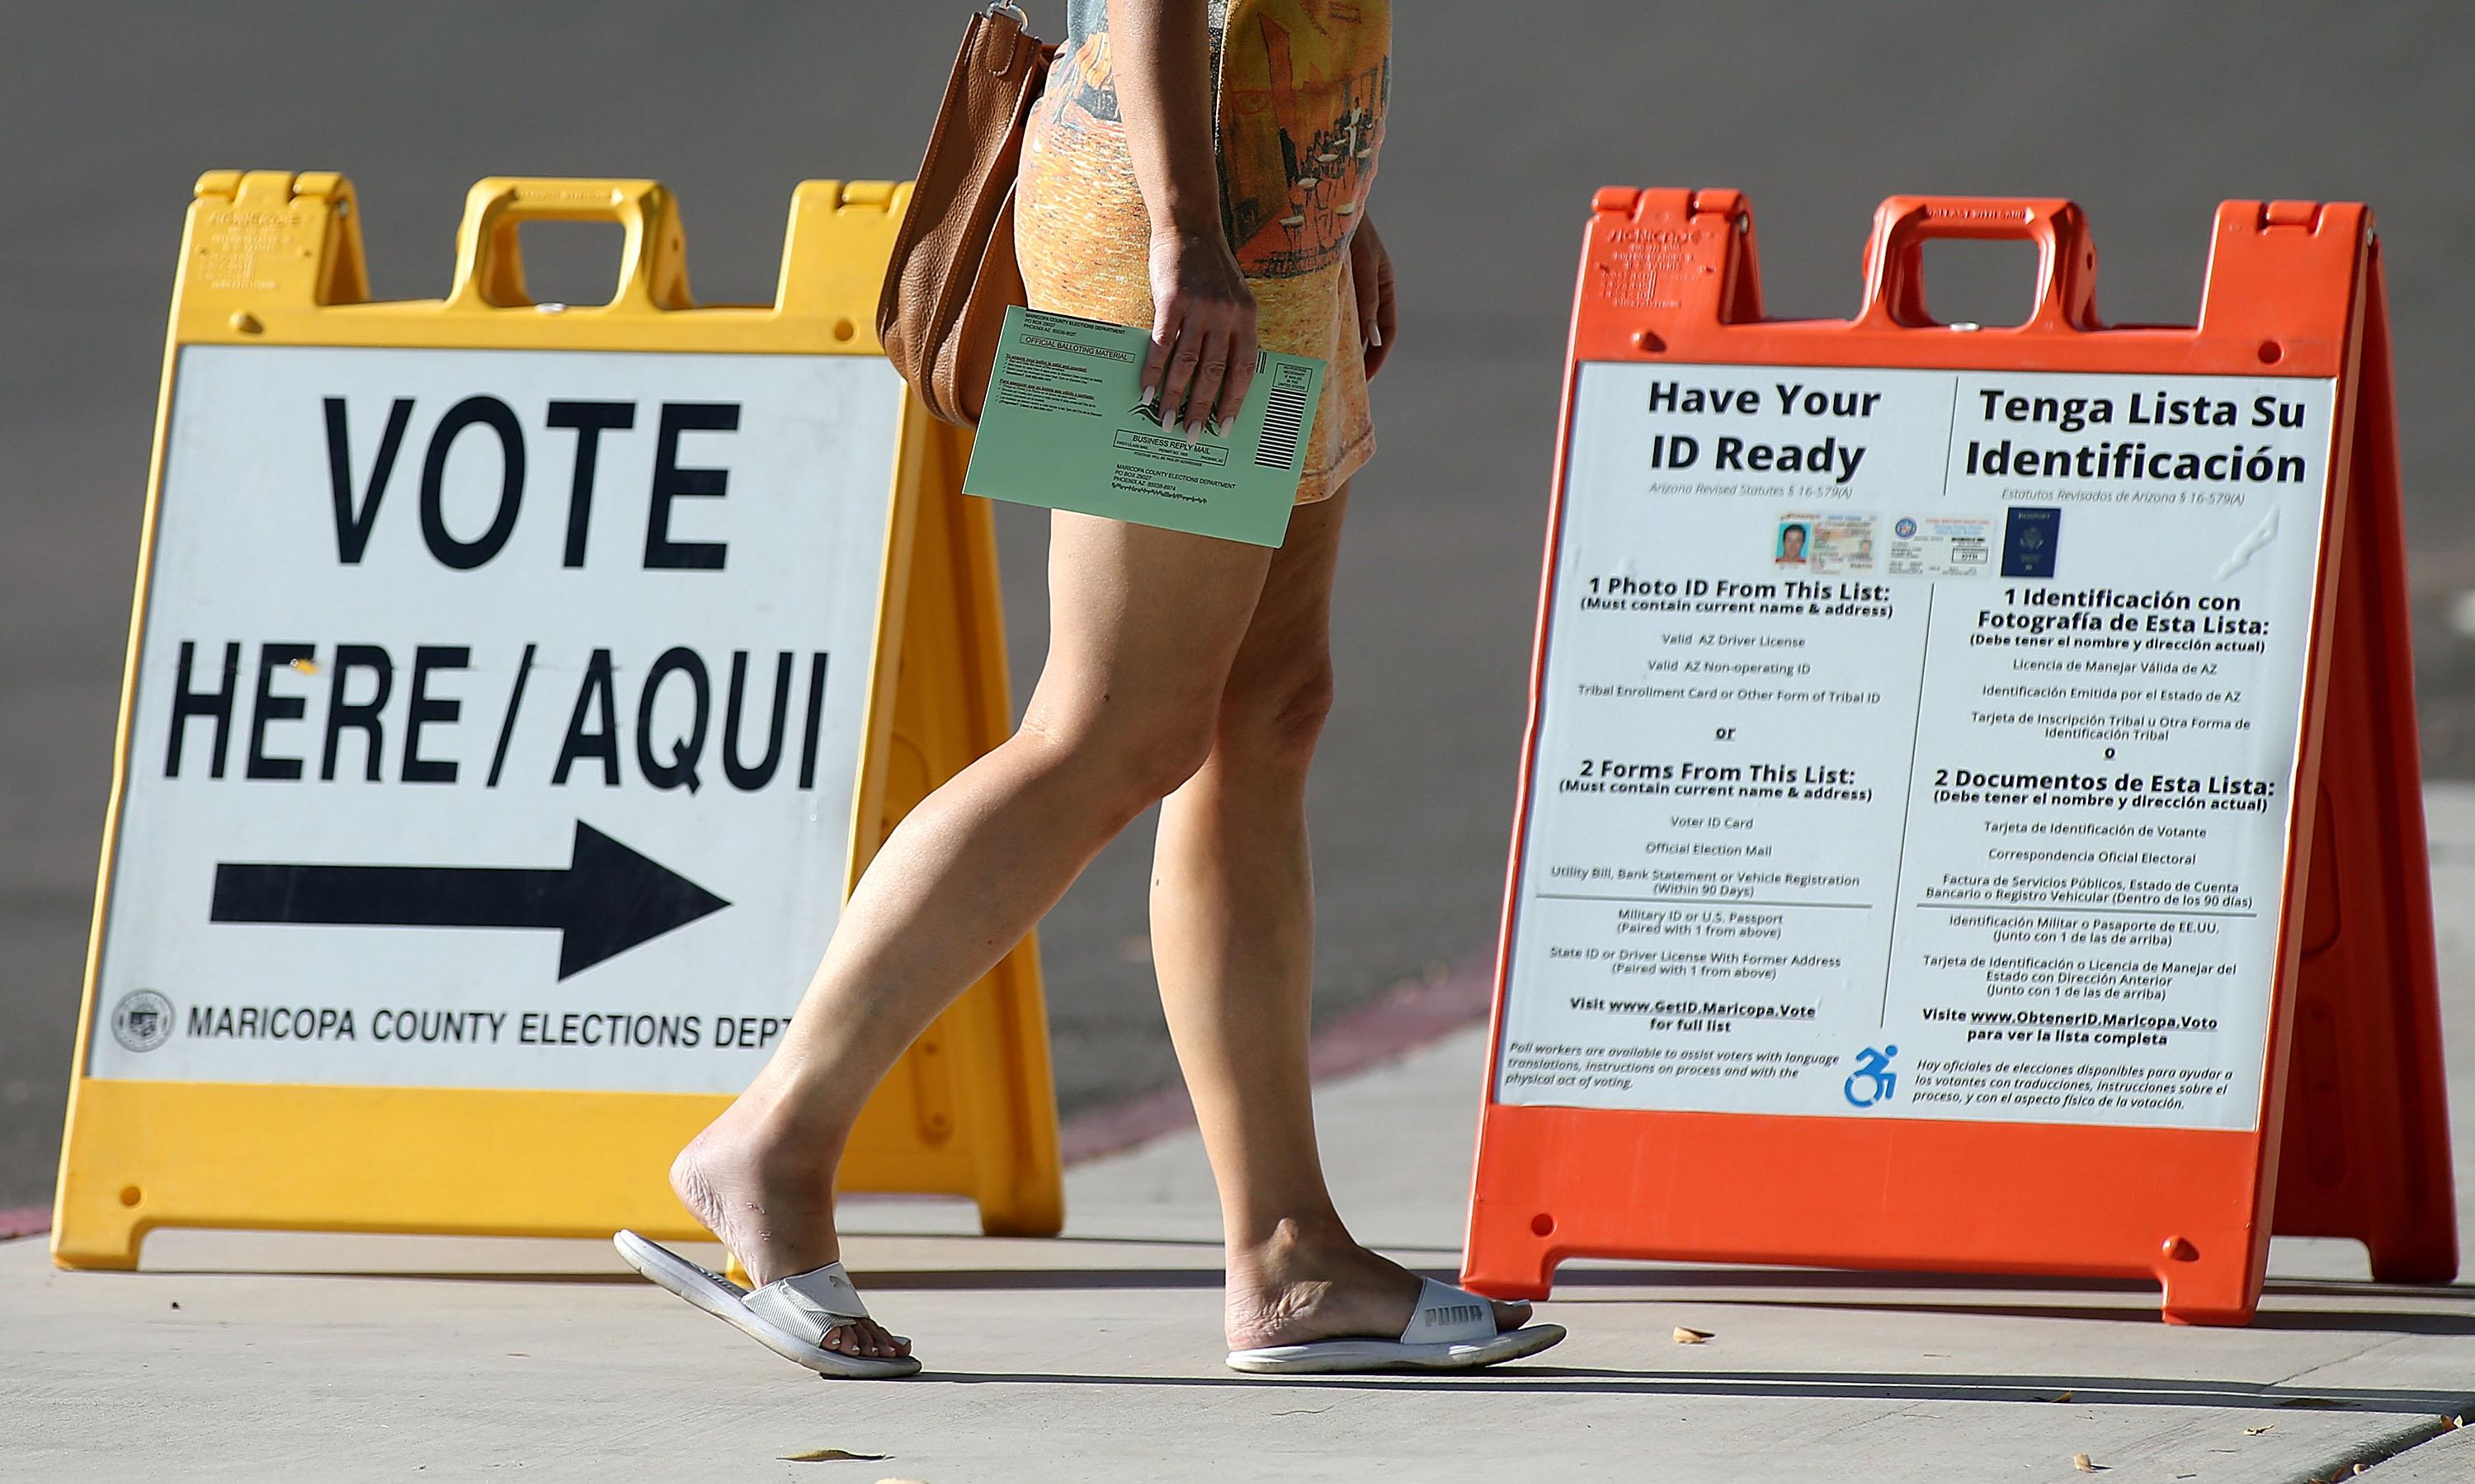 """An Arizona voter carries her ballot to a polling place, walking by a """"VOTE HERE"""" sign and a sign that tells voters to """"Have Your ID Ready."""""""